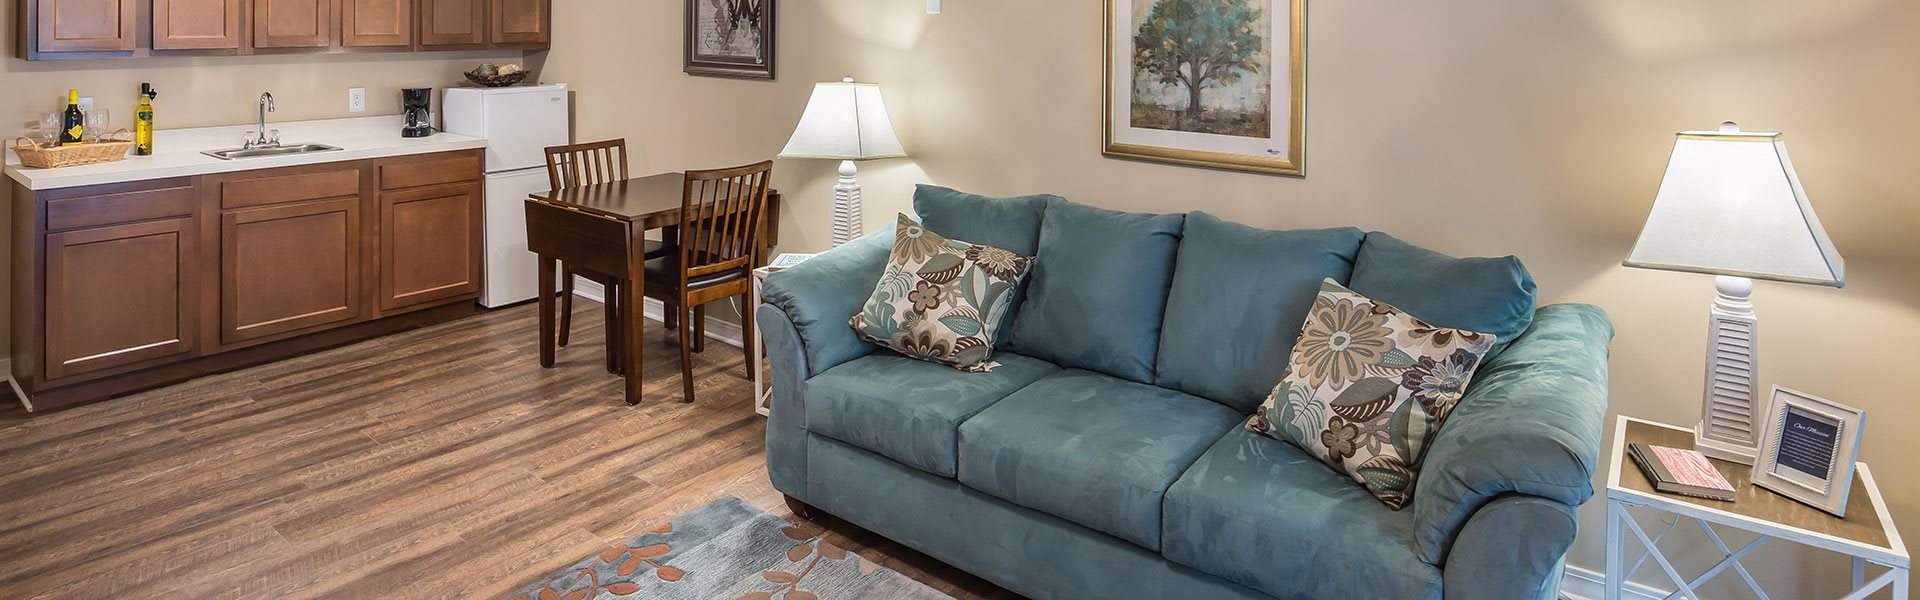 Comfy Sofa at Pacifica Senior Living, Wyndham Lakes, Jacksonville, Florida